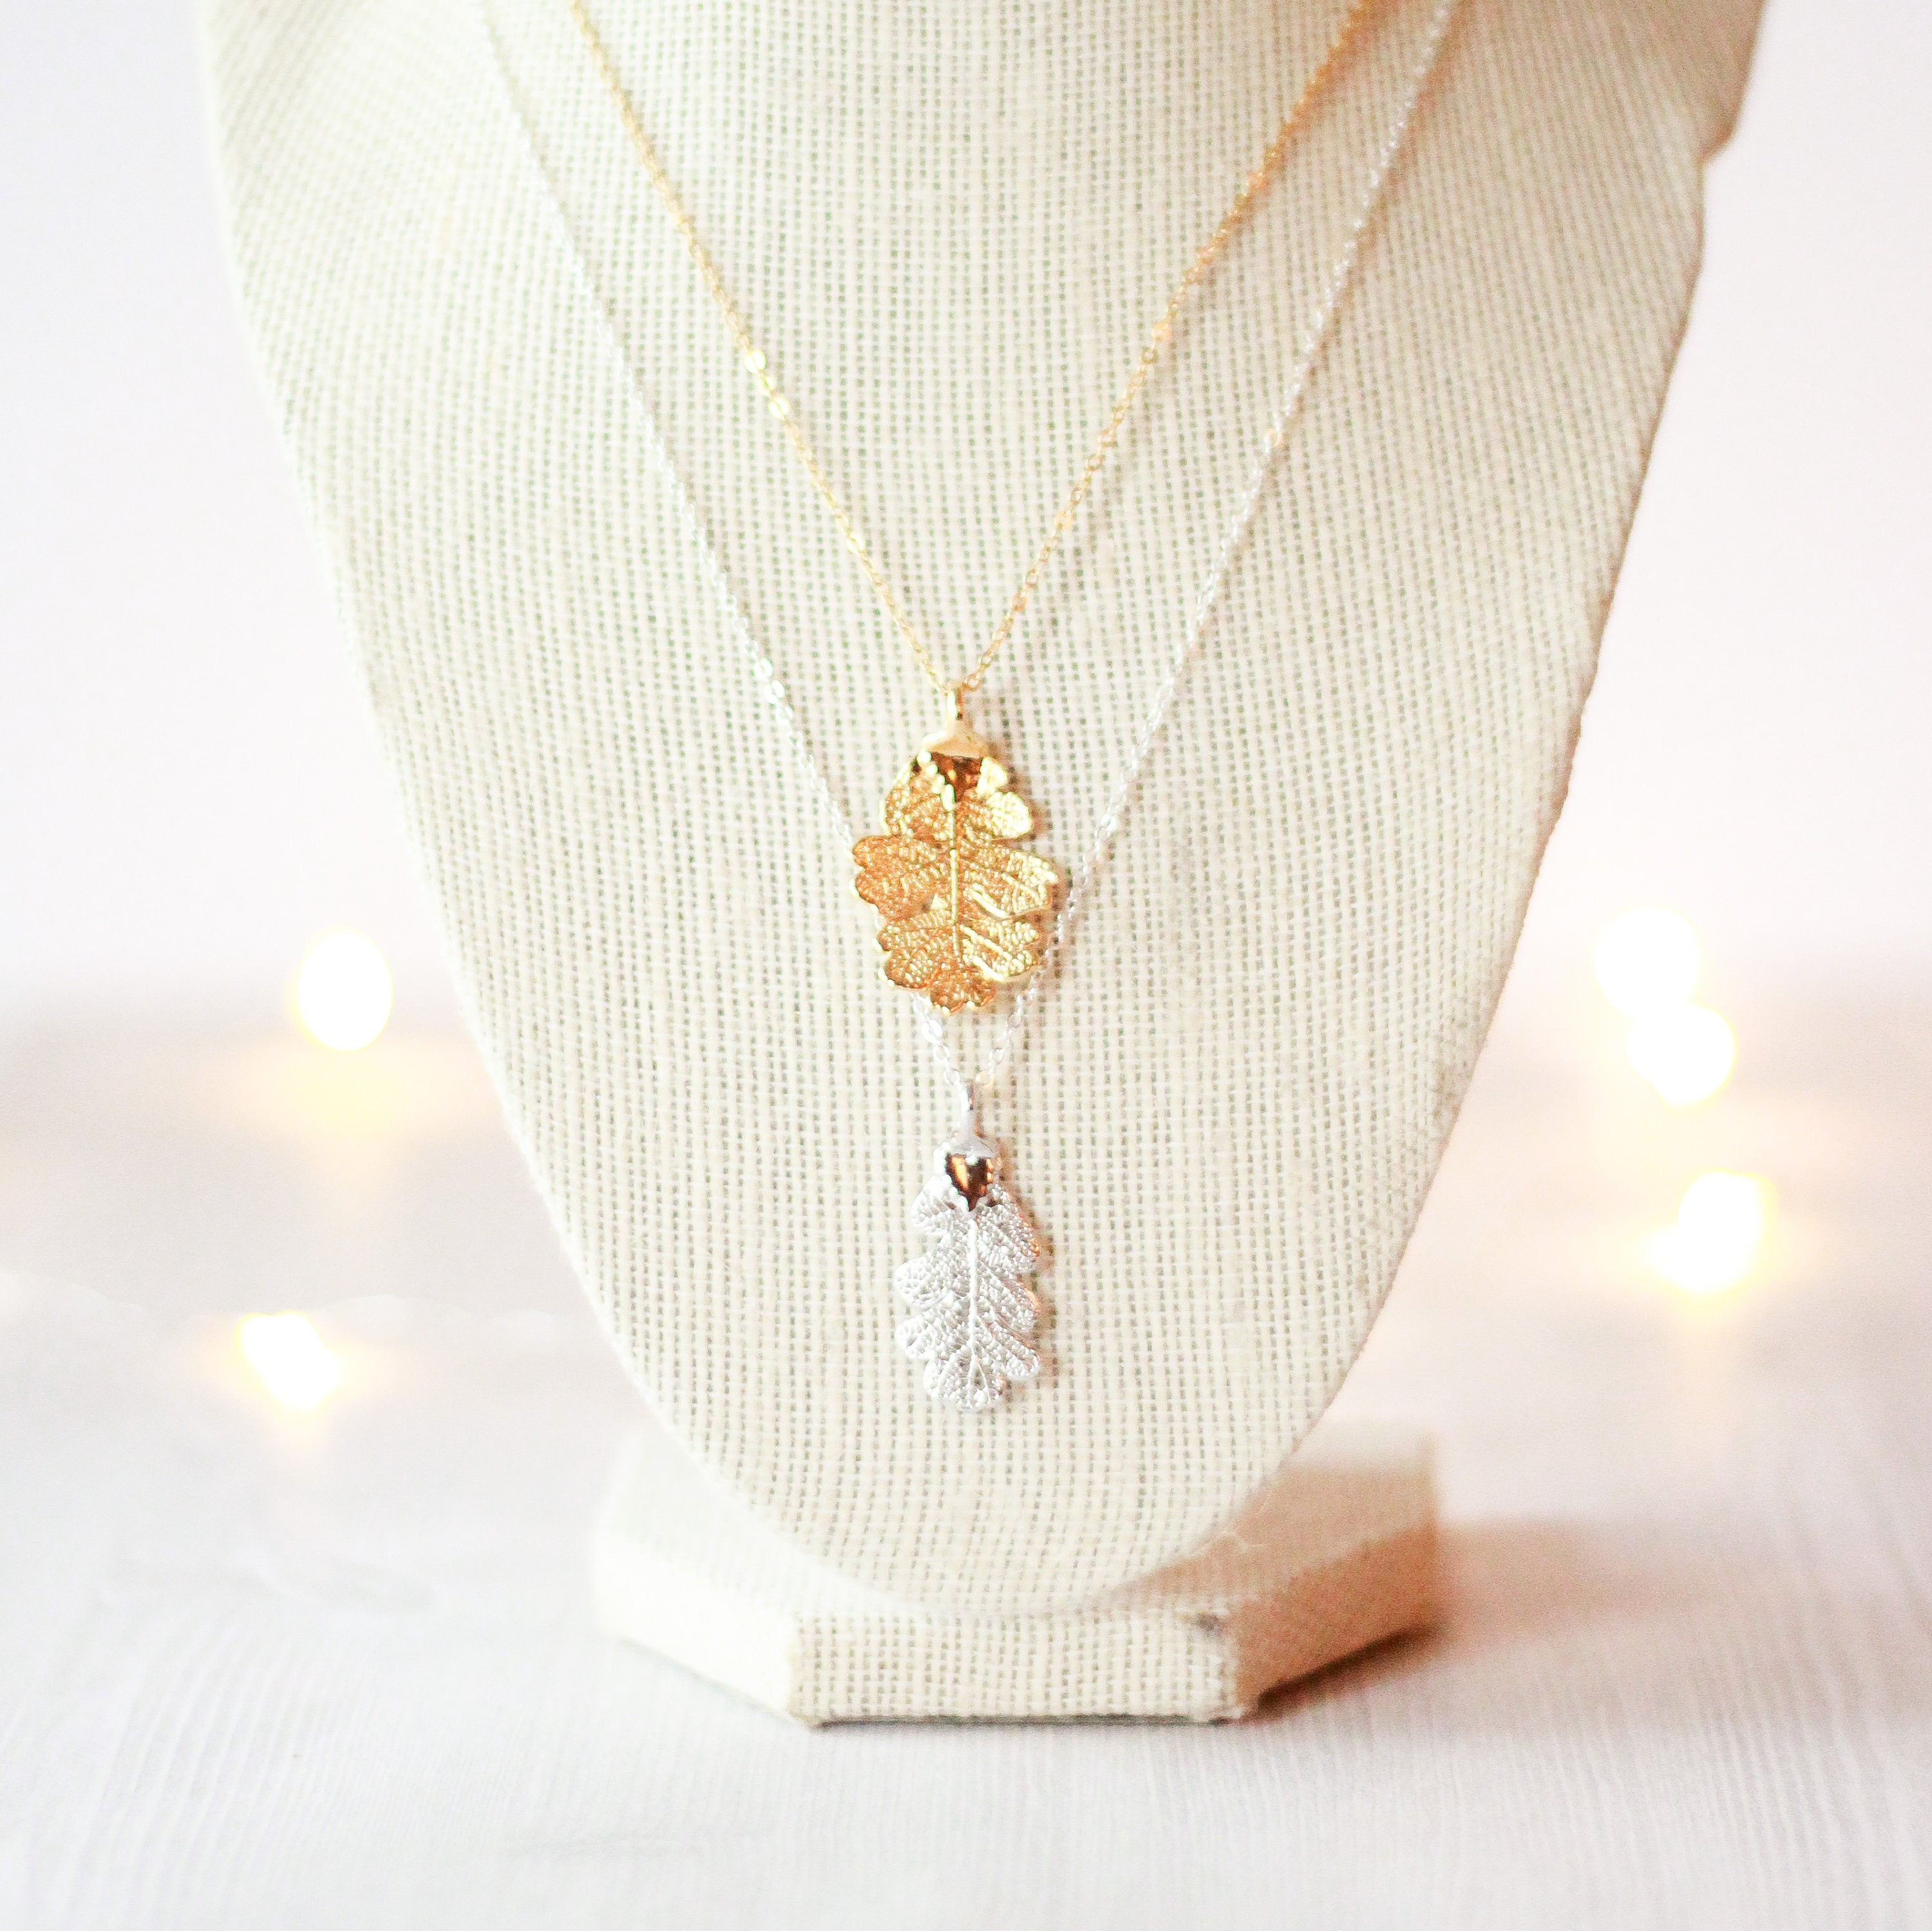 Oak Leaf Necklace | Real Leaf Necklace, Gold Leaf, Silver Leaf, Nature Jewelry, Bridesmaid Jewelry, Bridesmaid Necklace, Bridesmaid Gift For Most Current Oak Leaf Necklaces (View 23 of 25)